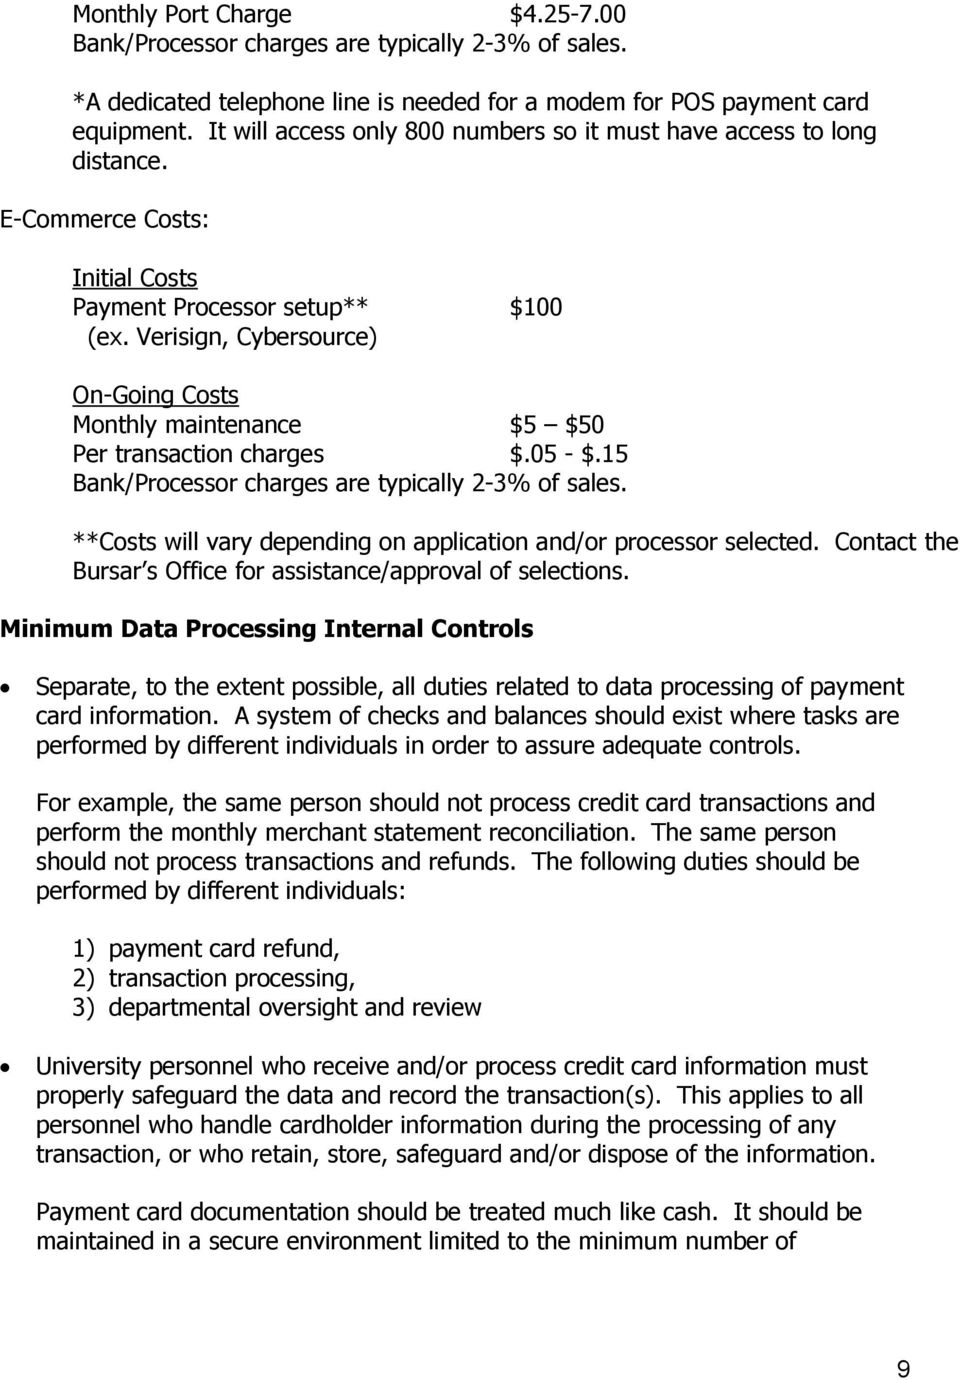 Verisign, Cybersource) On-Going Costs Monthly maintenance $5 $50 Per transaction charges $.05 - $.15 Bank/Processor charges are typically 2-3% of sales.